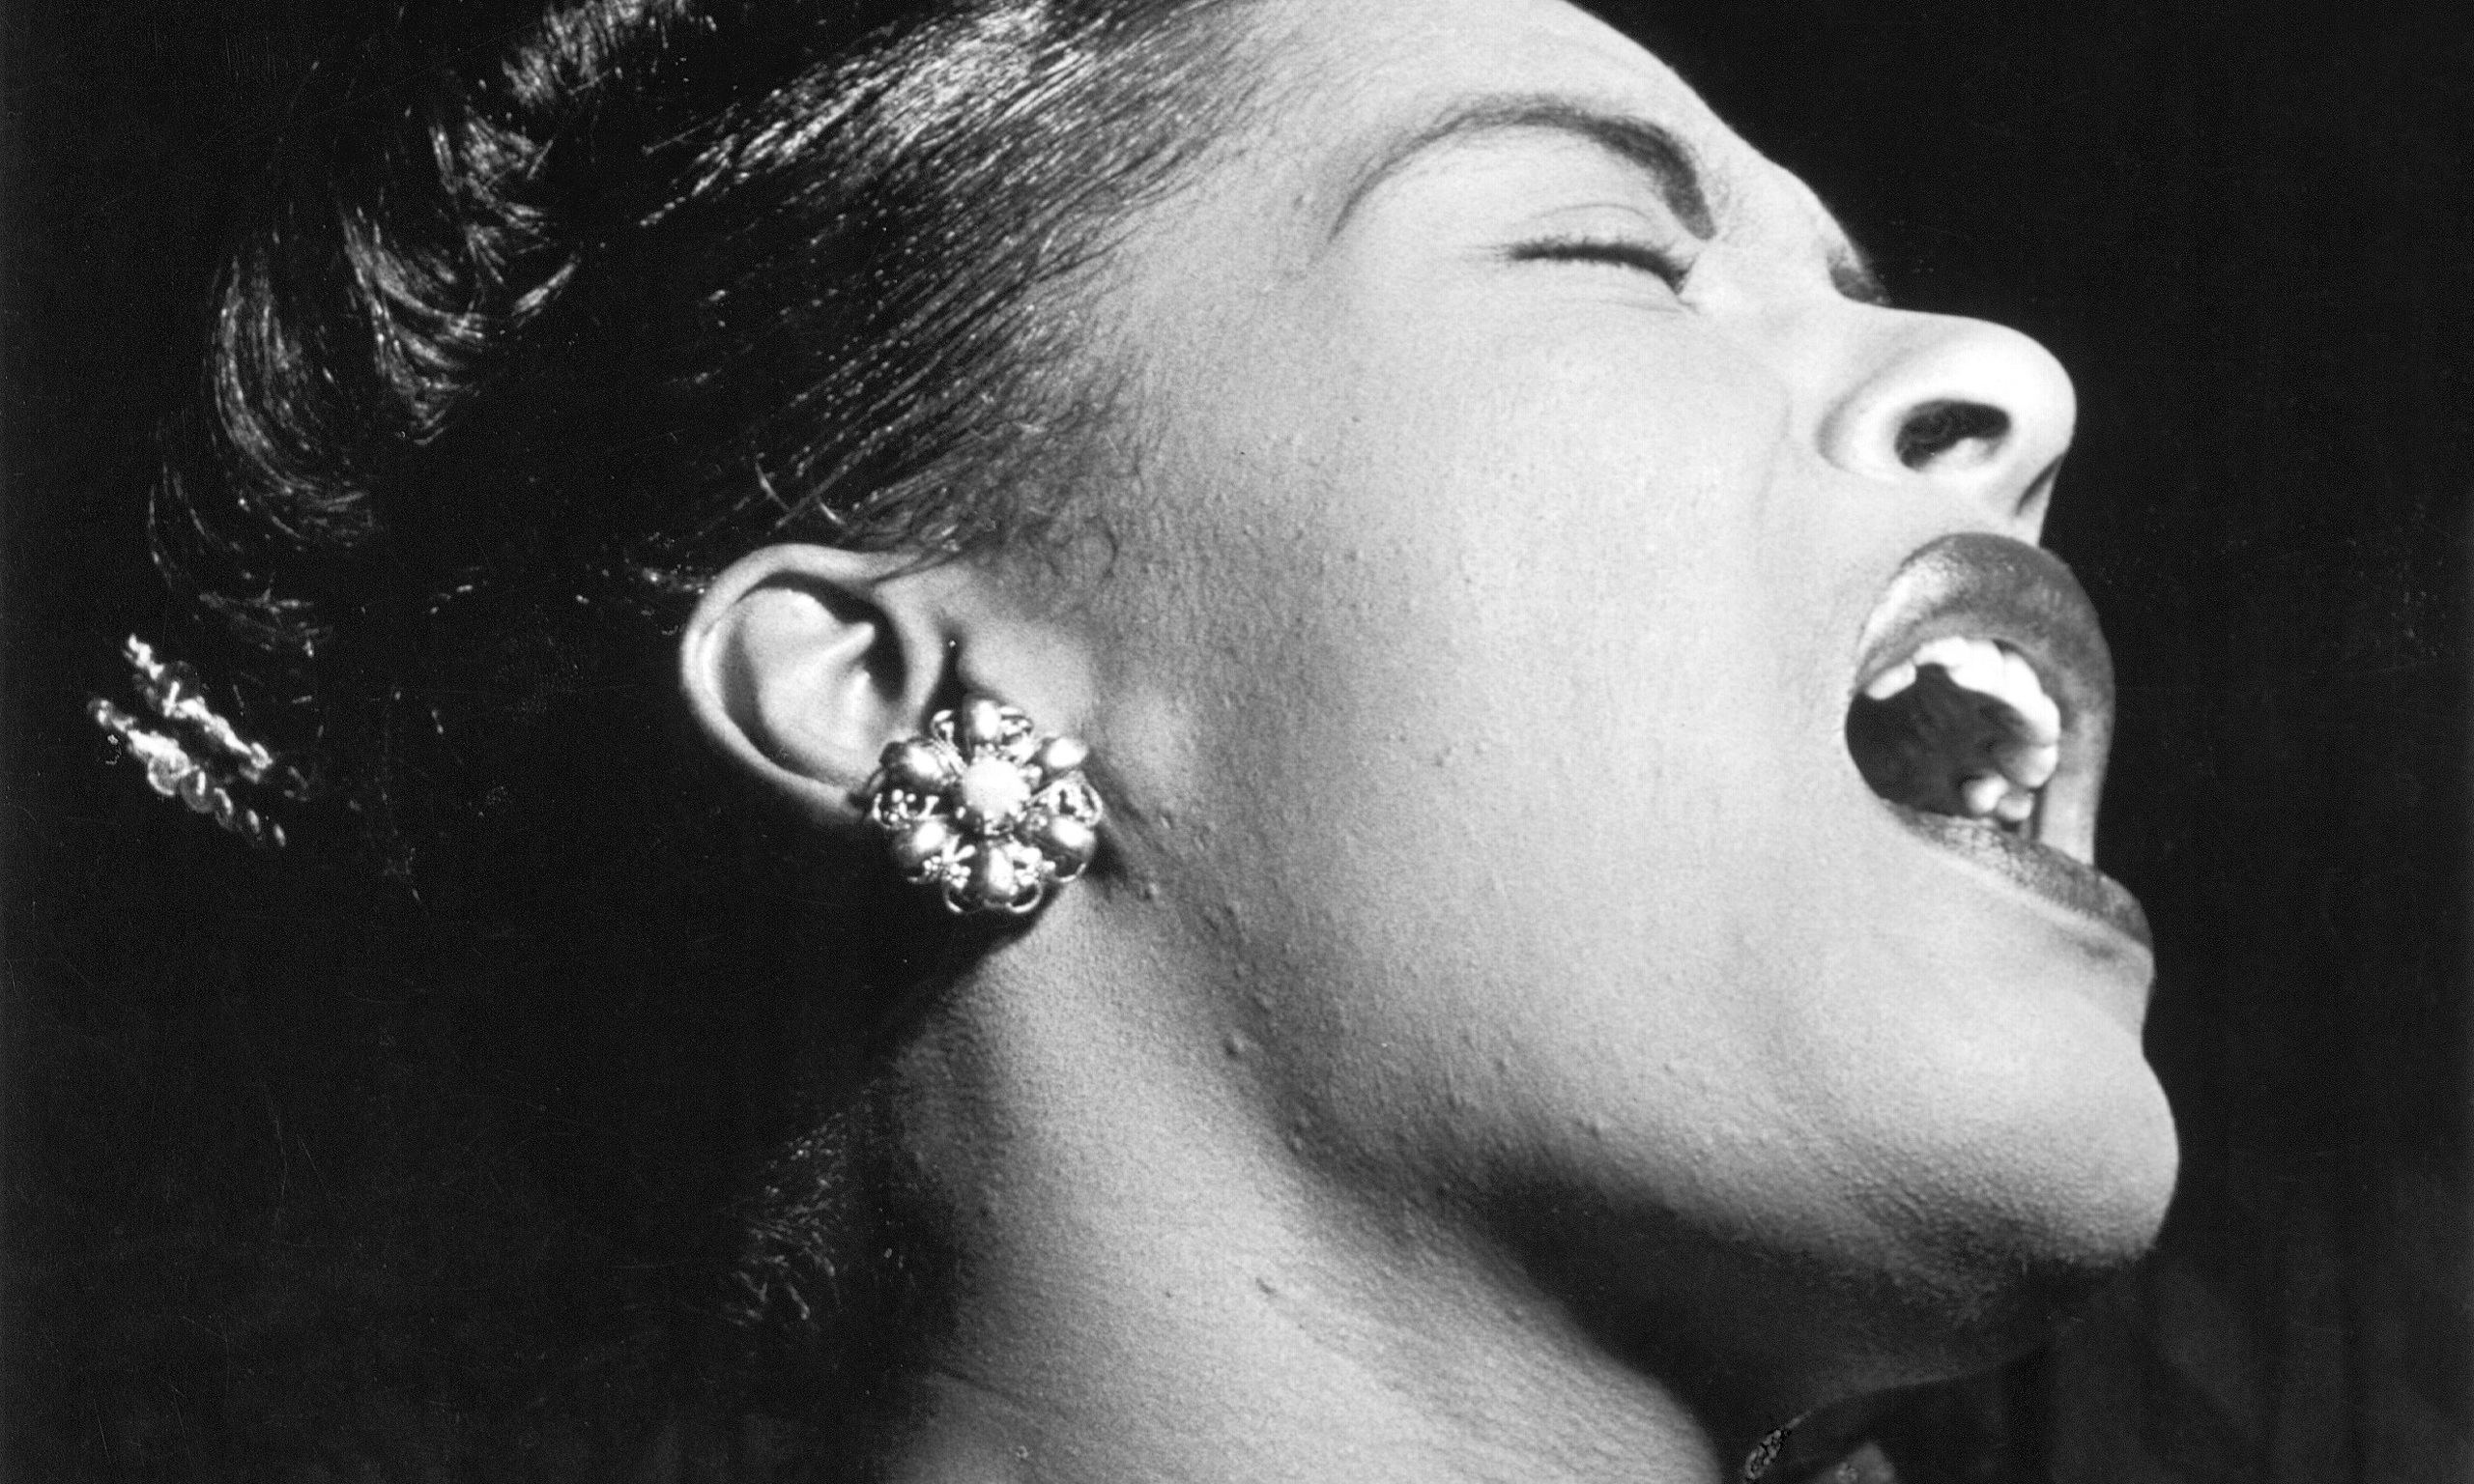 Billie Holiday Billie Holiday A Picture From The Past Art And Design